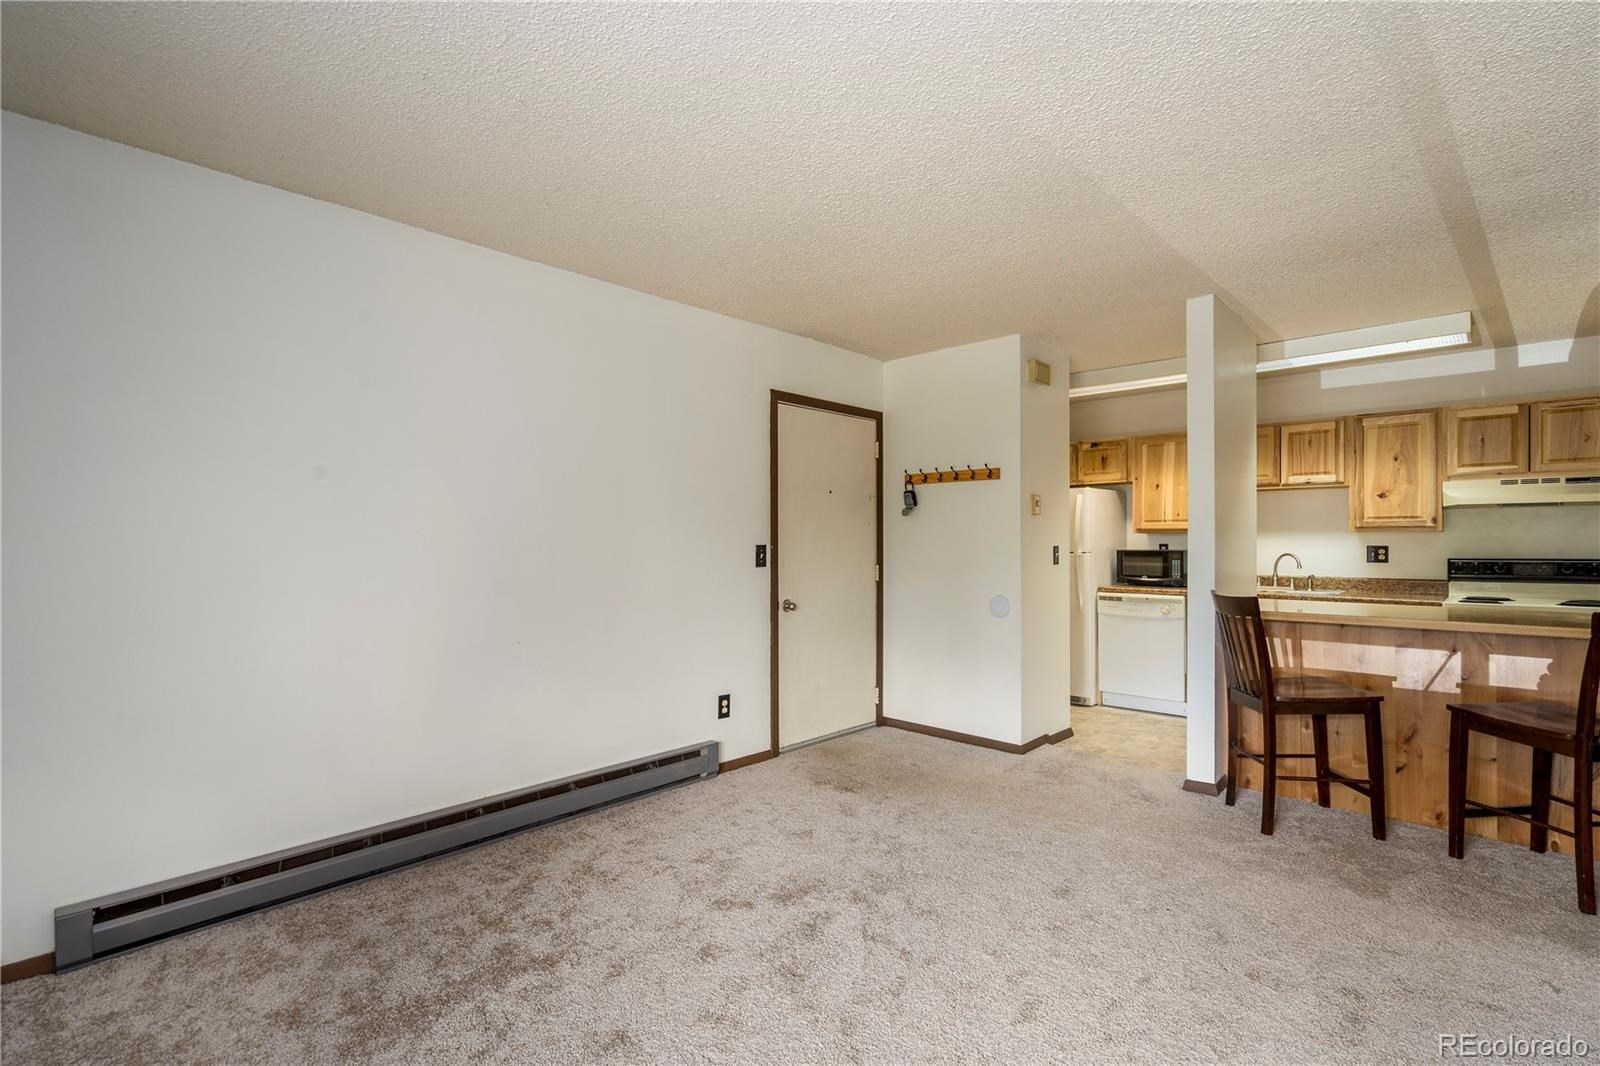 MLS# 5203269 - 5 - 1320 Athens Plaza #4, Steamboat Springs, CO 80487